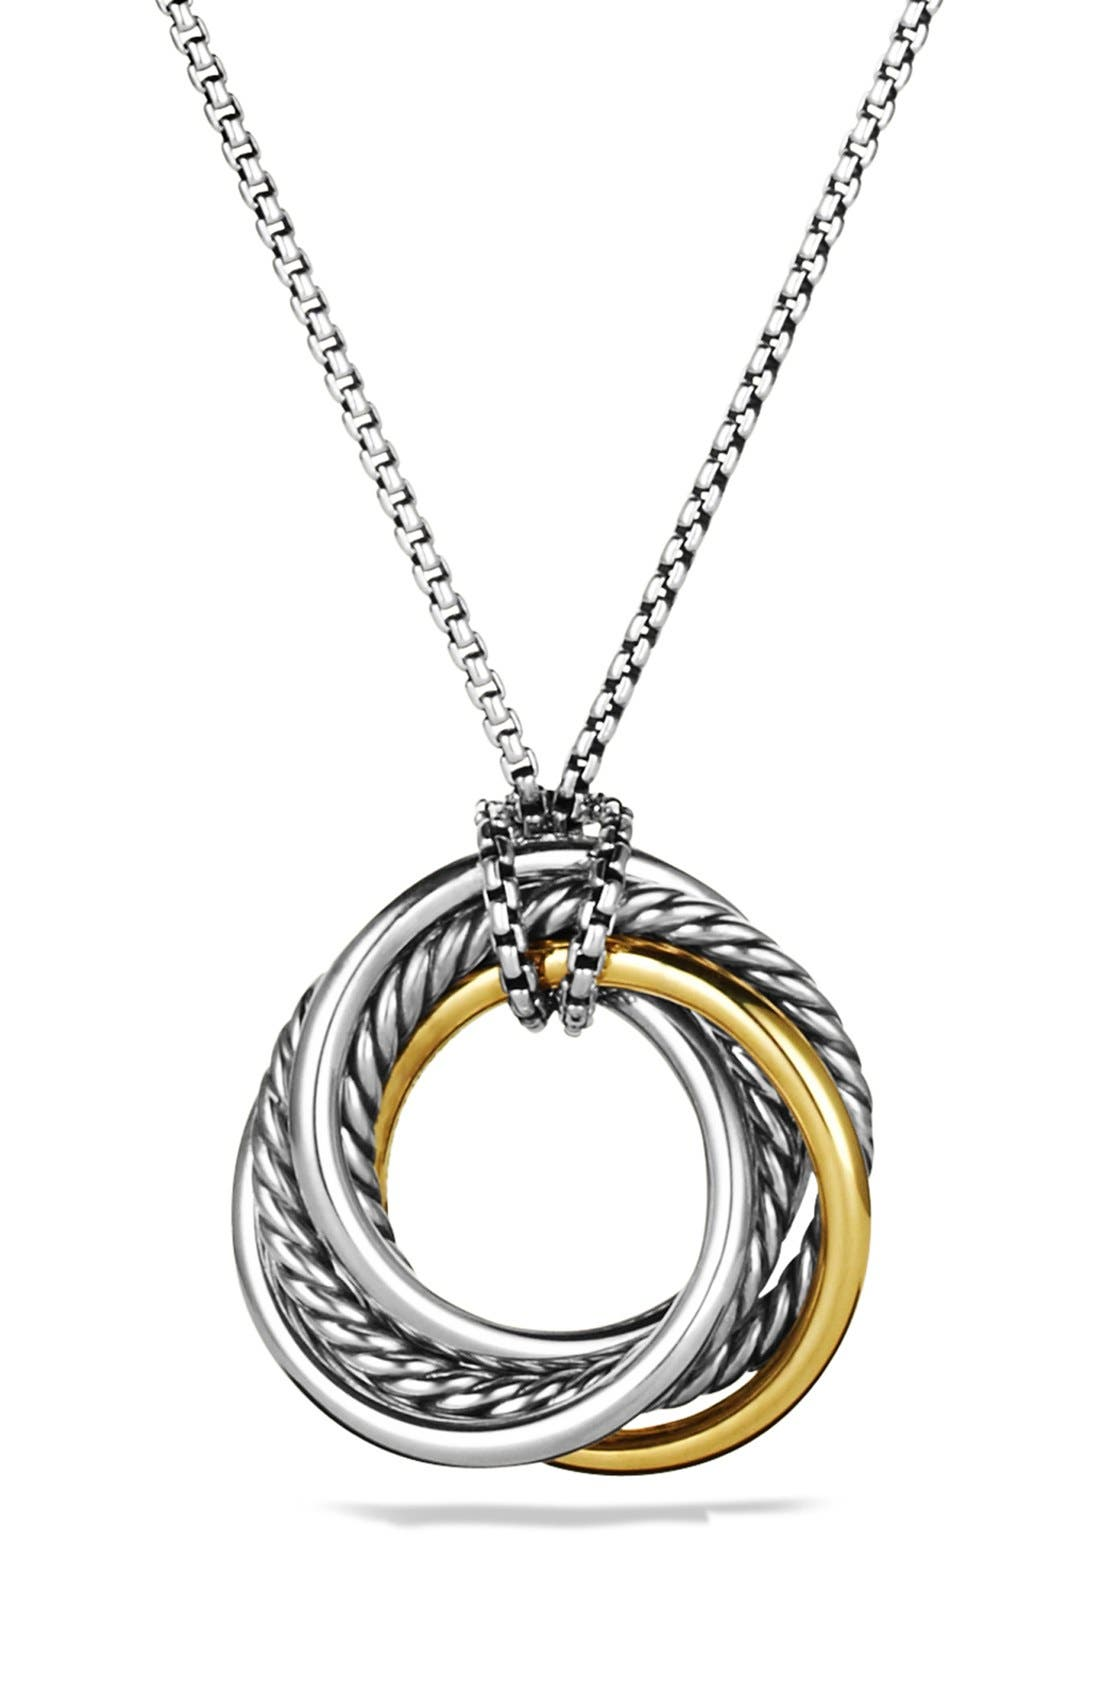 David Yurman 'Crossover' Small Pendant with Gold on Chain